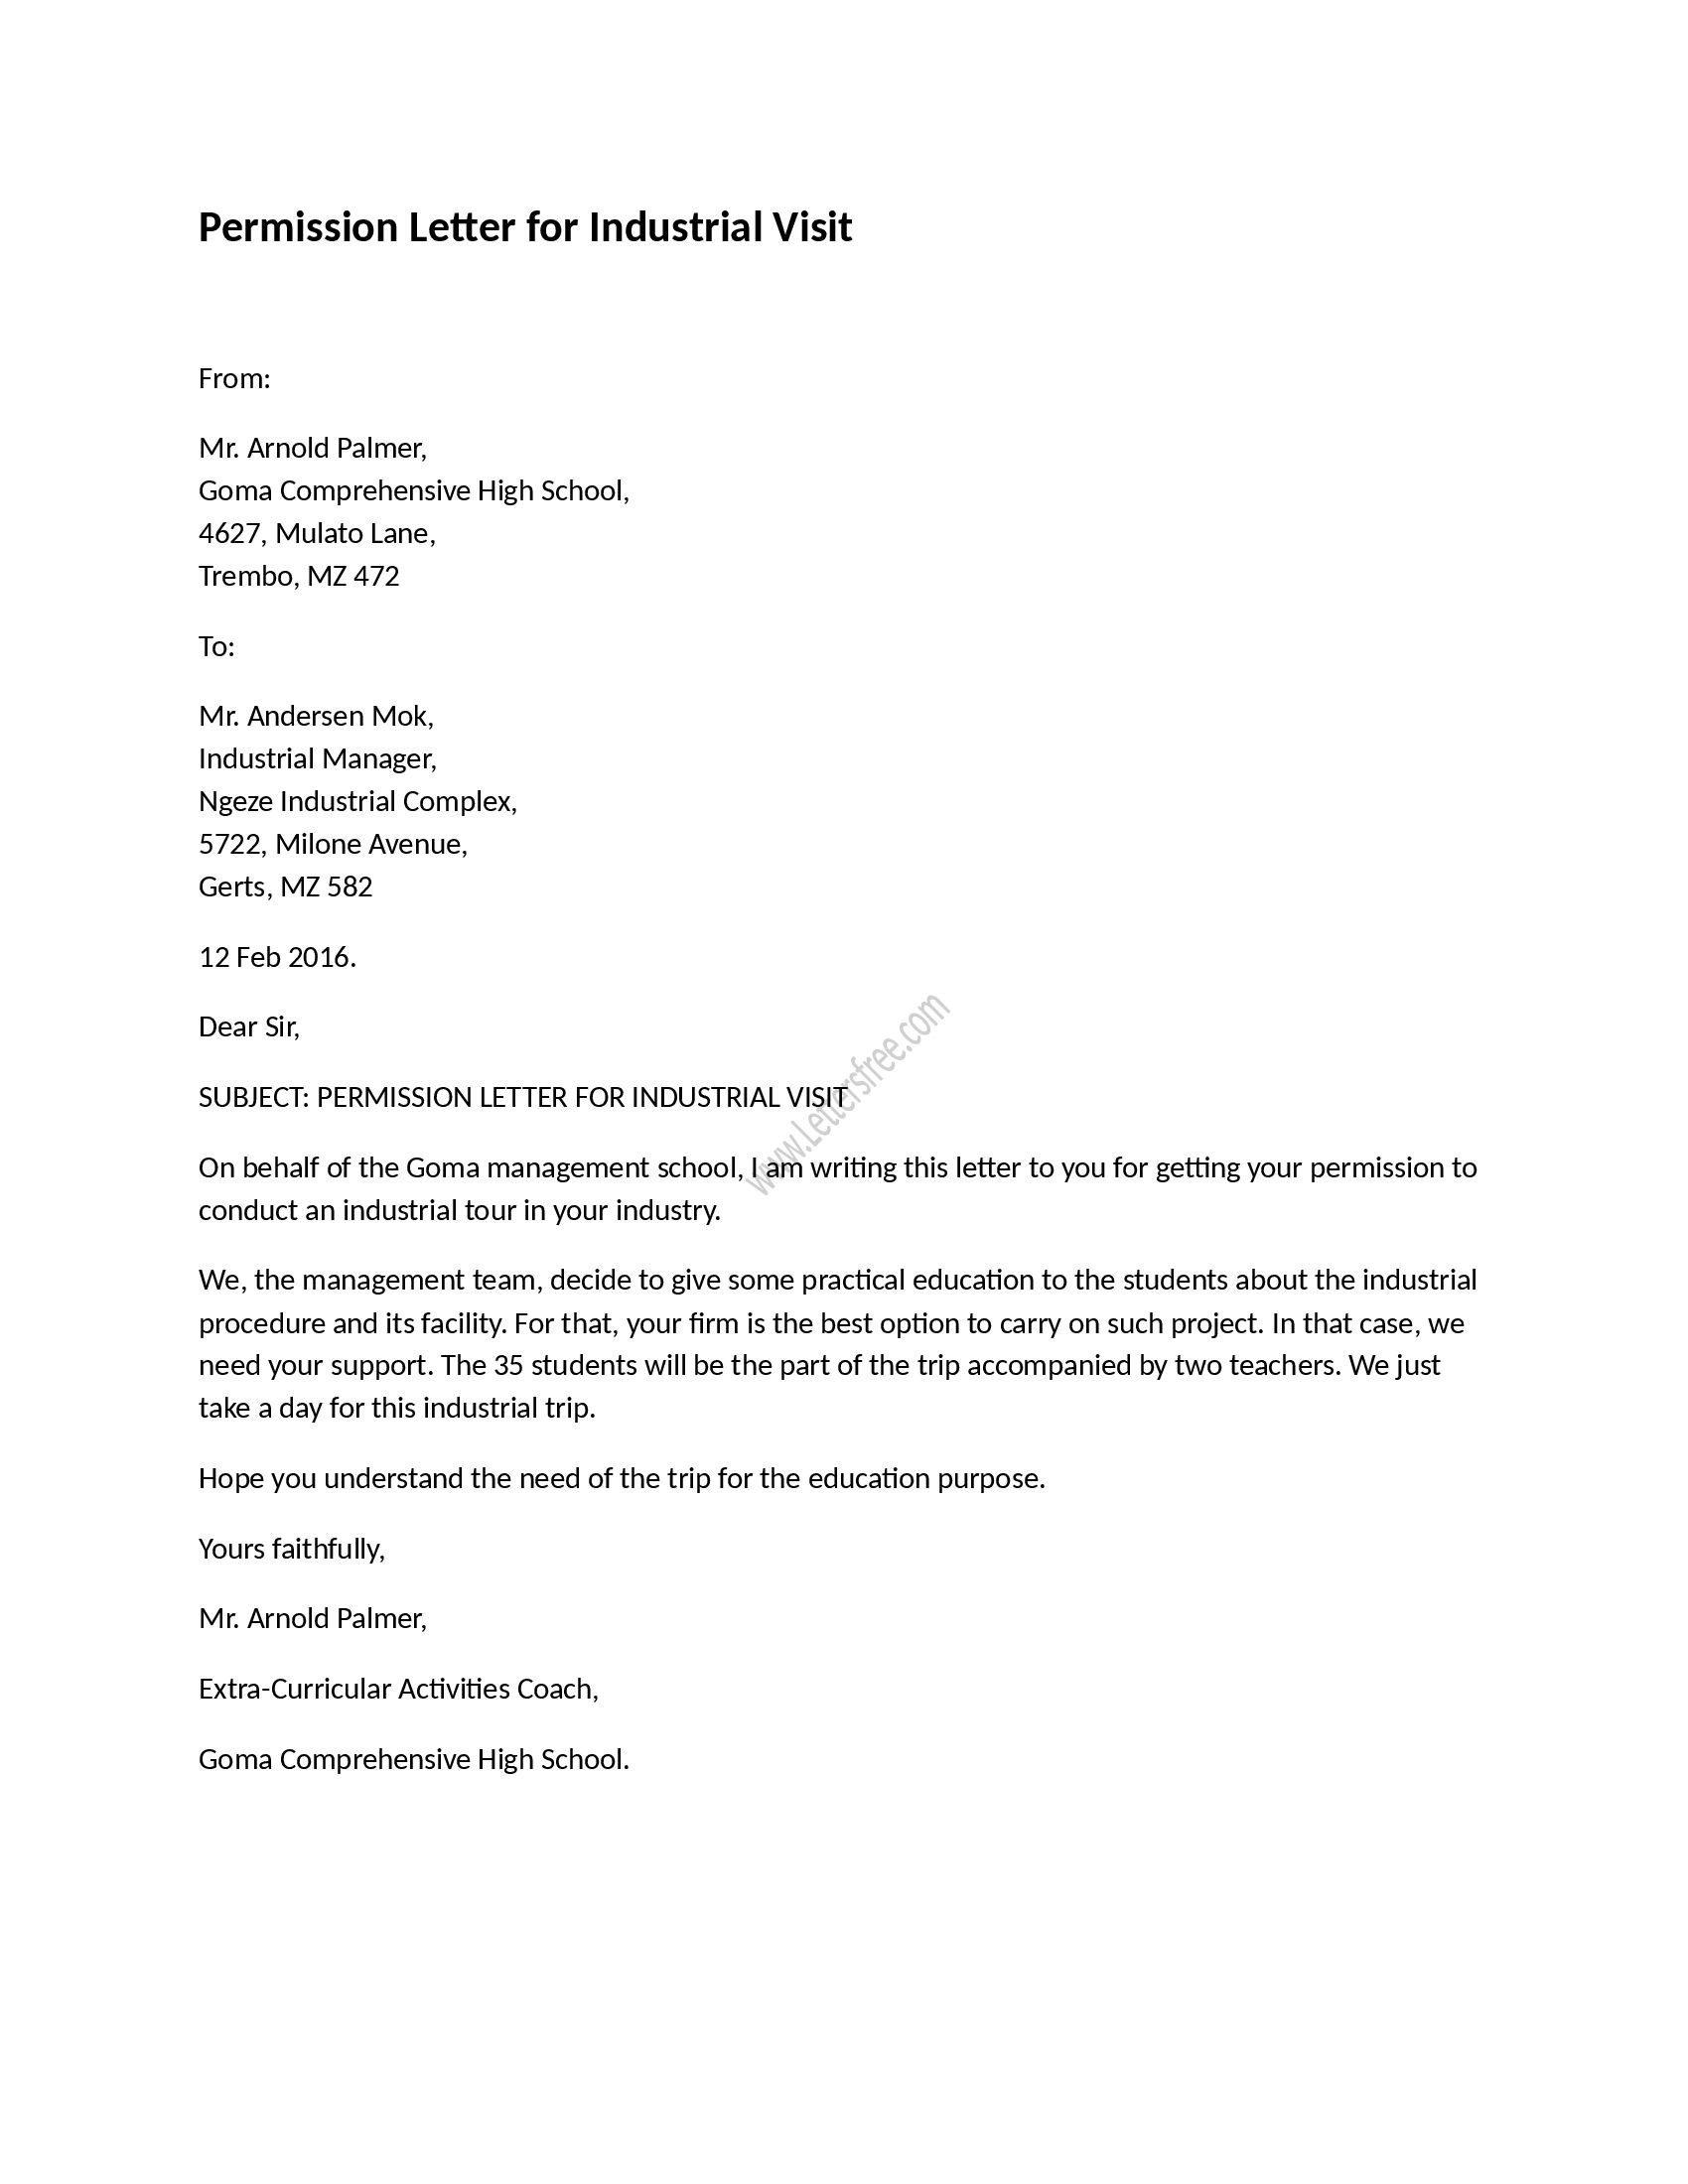 Letter Of Permission to Travel with Grandchildren Template - Permission Letter for Industrial Visit Pinterest